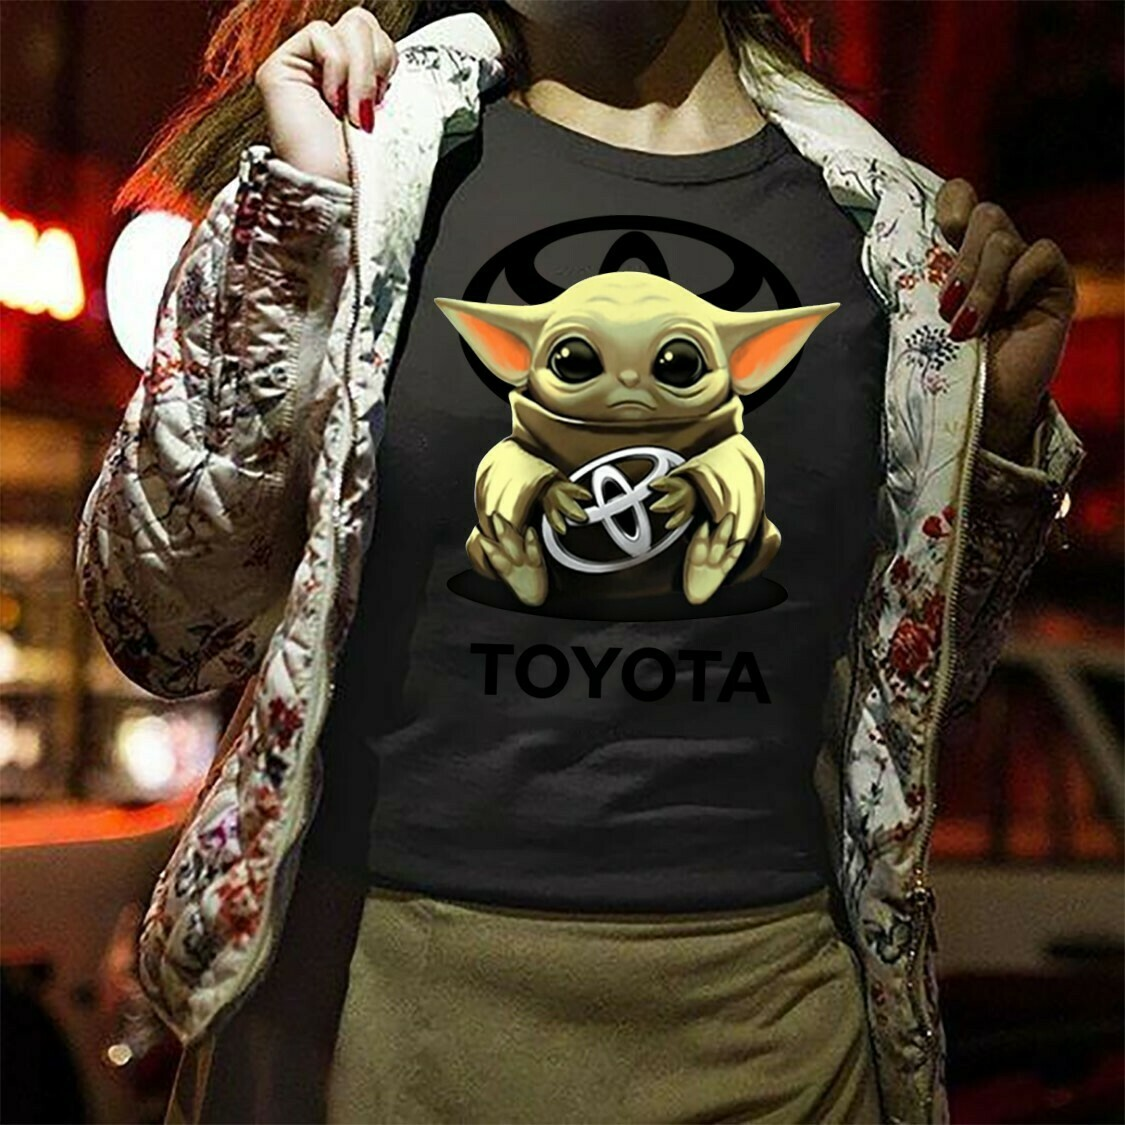 Baby Yoda Hugging Toyota Toyoda,The Mandalorian the Child Movies Adopt This Jedi Funny ,Valentines Gift Idea For Men Women T-Shirt Hoodie Sweatshirt Sweater Tee Kids Youth Gifts Jolly Family Gifts